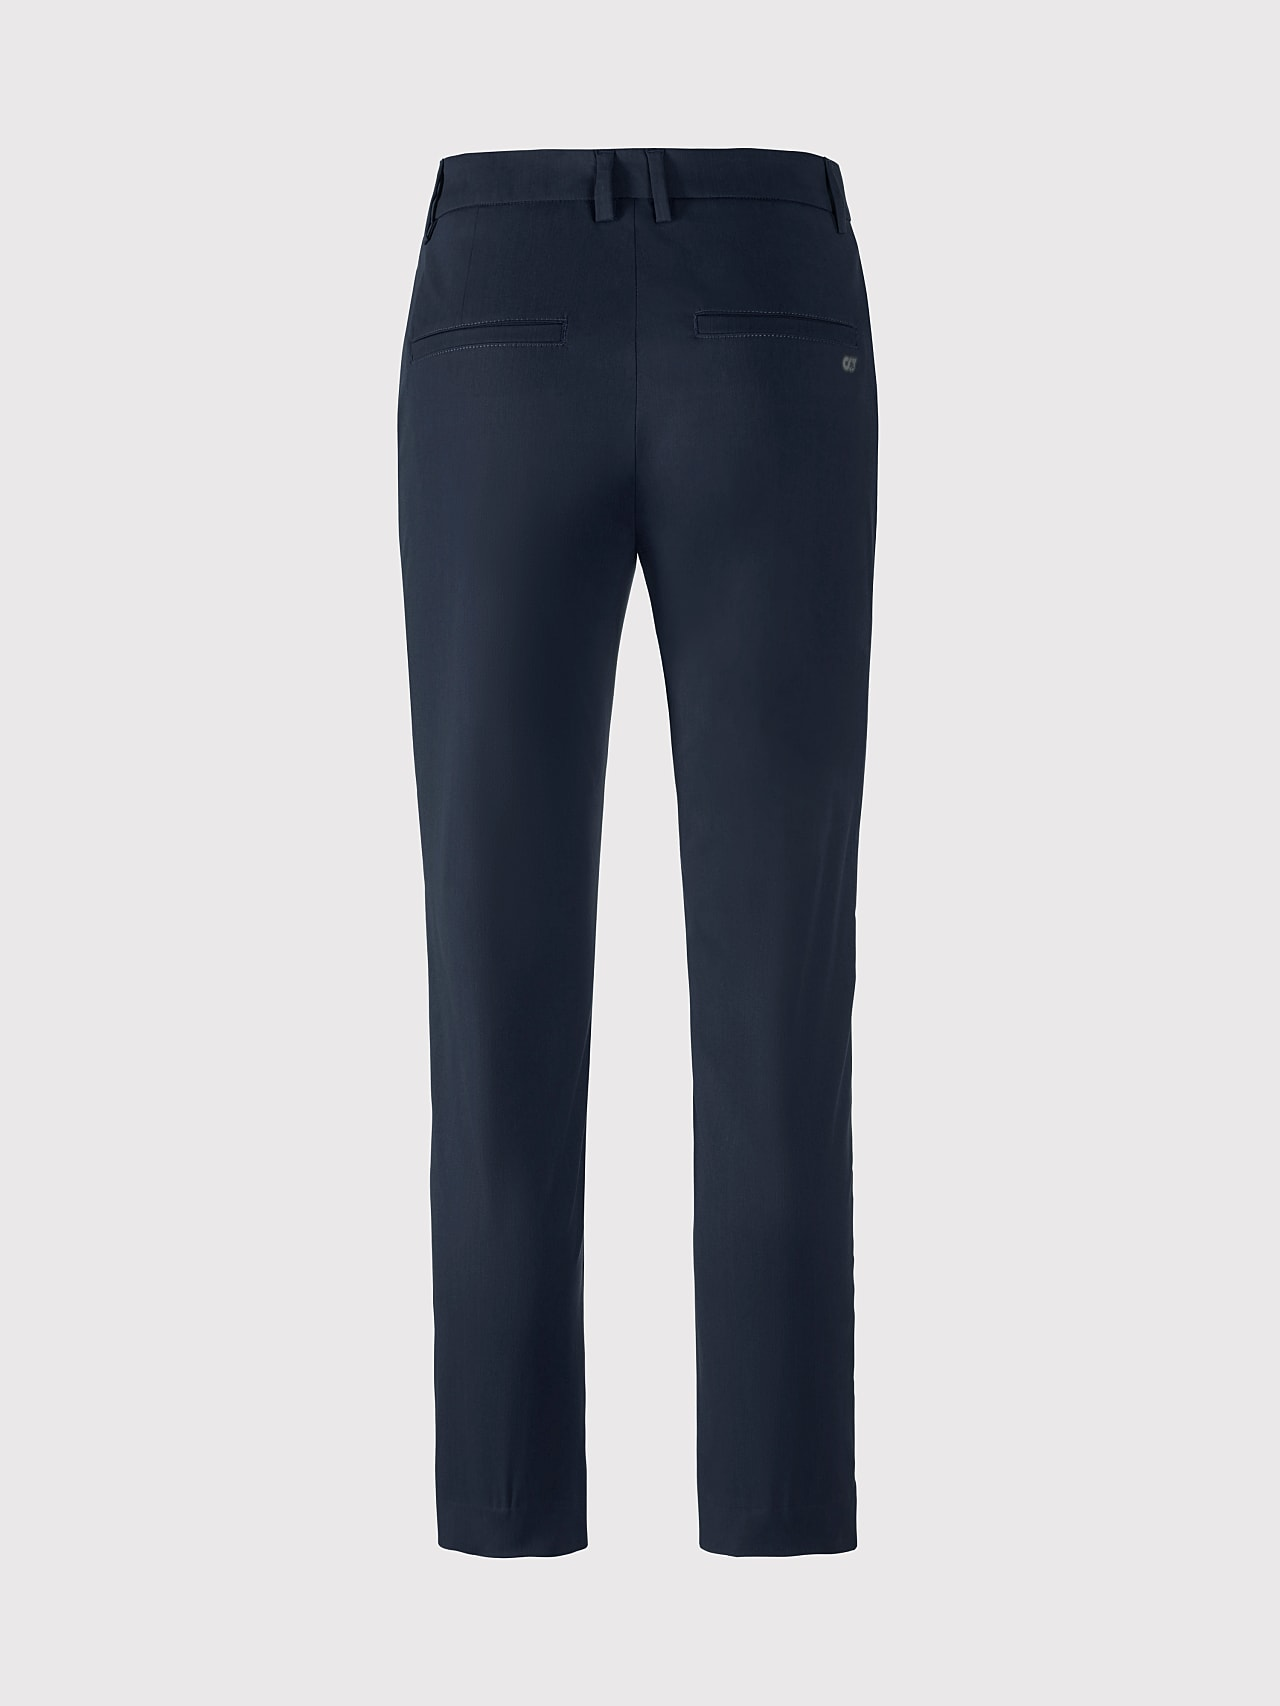 PEPPI V1.Y5.01 Water-Repellent Cotton-Twill Chino navy Left Alpha Tauri